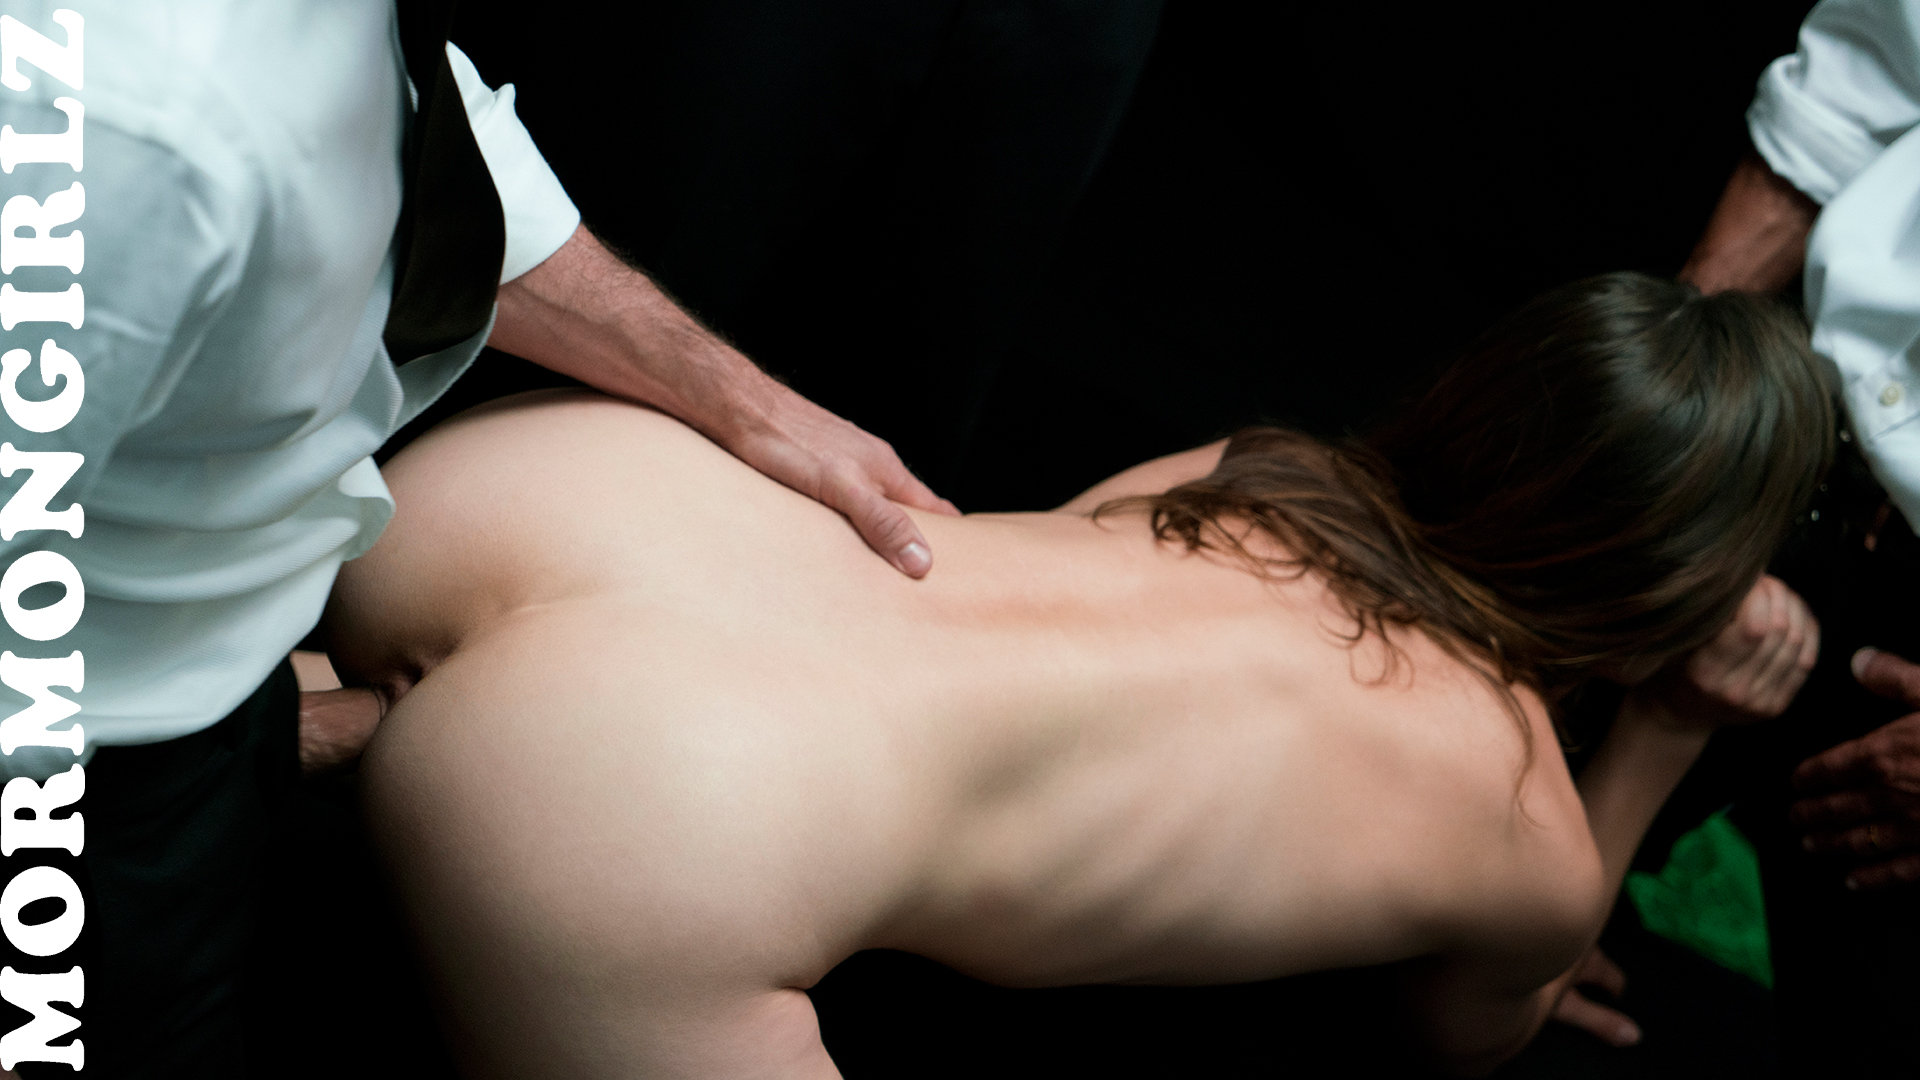 mysterious mormon beauty providing handjobs at free will to her superiors #10